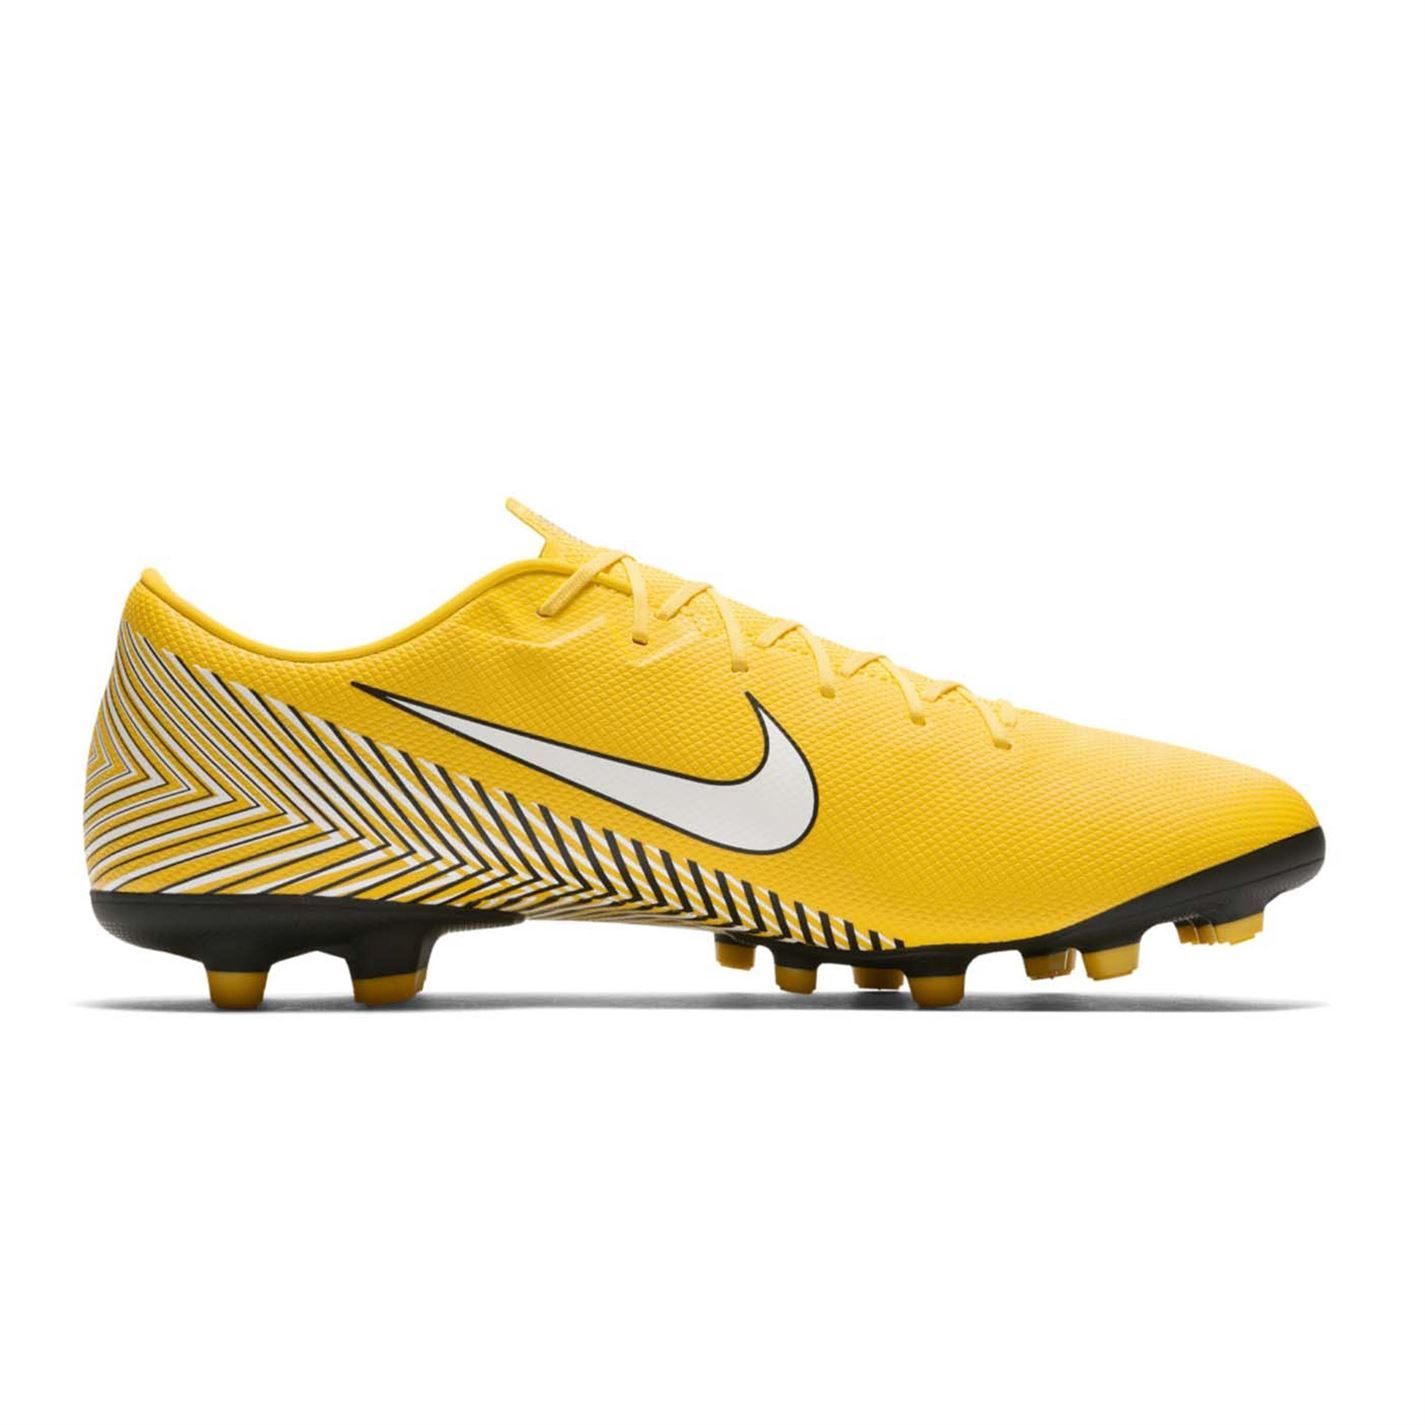 f7c78dd09d9 ... Nike Mercurial Vapor Academy Neymar FG Football Boots Mens Yellow  Soccer Cleats